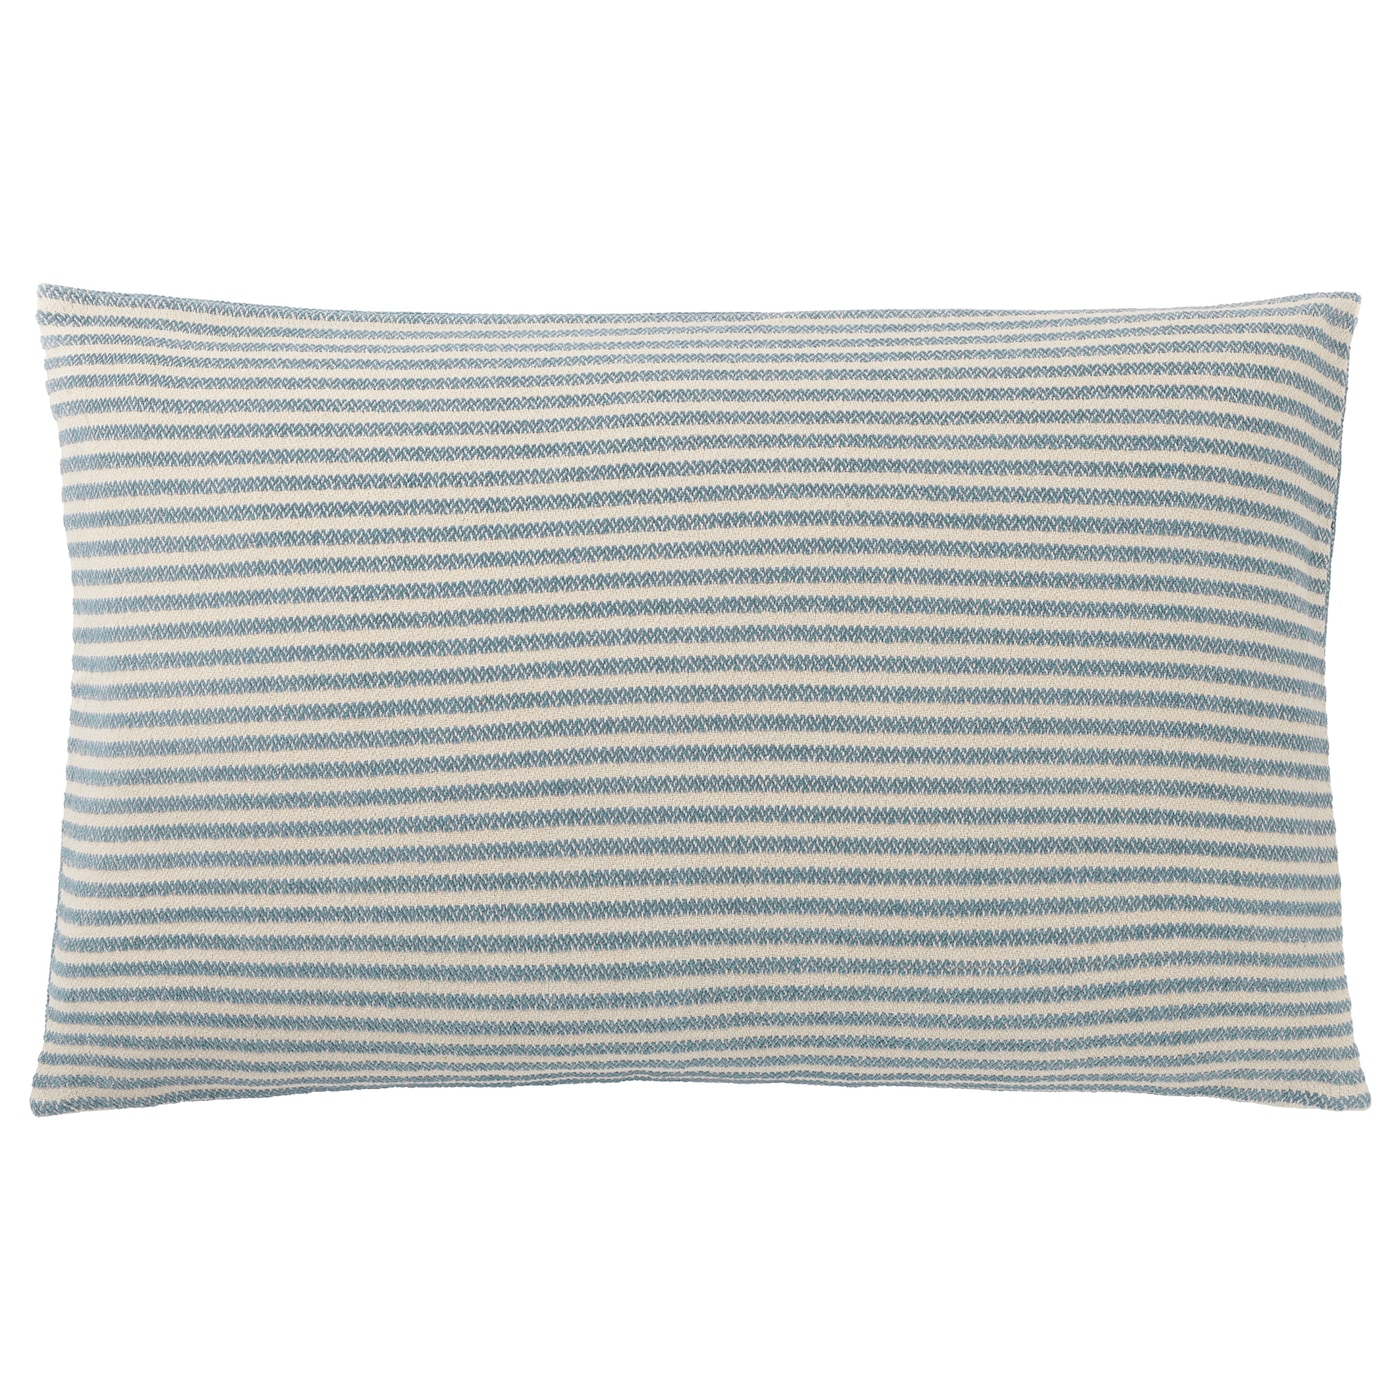 IKEA SNÖFRID cushion cover Chenille fabric feels ultra soft against your skin.